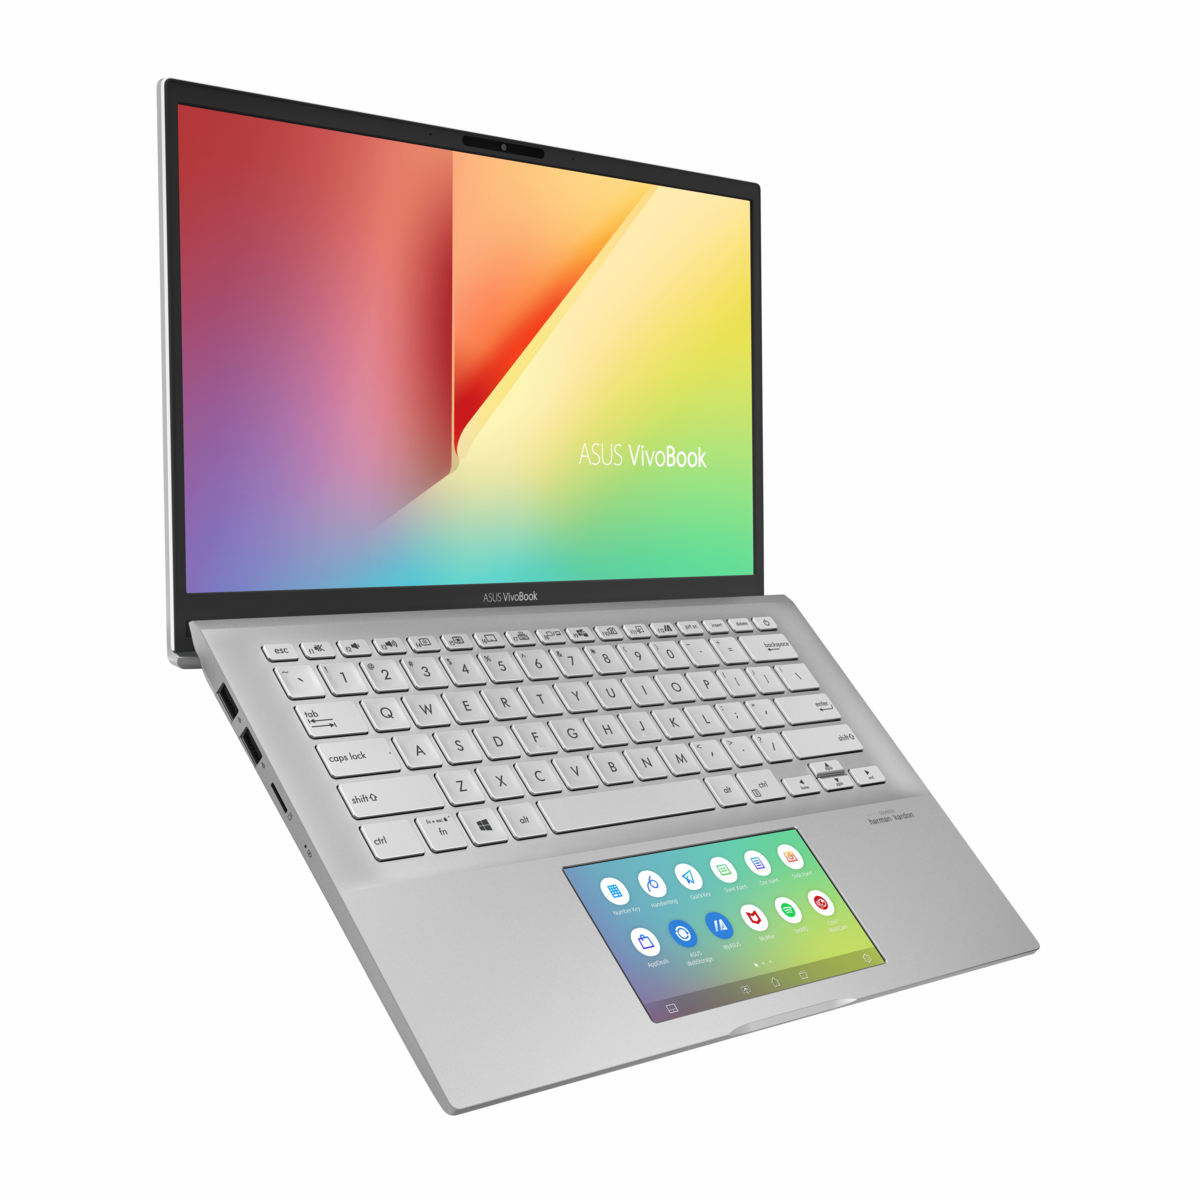 csm_ASUS_VivoBook_S14_S15_First_VivoBook_with_an_IR_camera_for_facial_login_and_up_to_Wi_Fi_6_802.11ax_for_superfast_connections_412fd92ac3